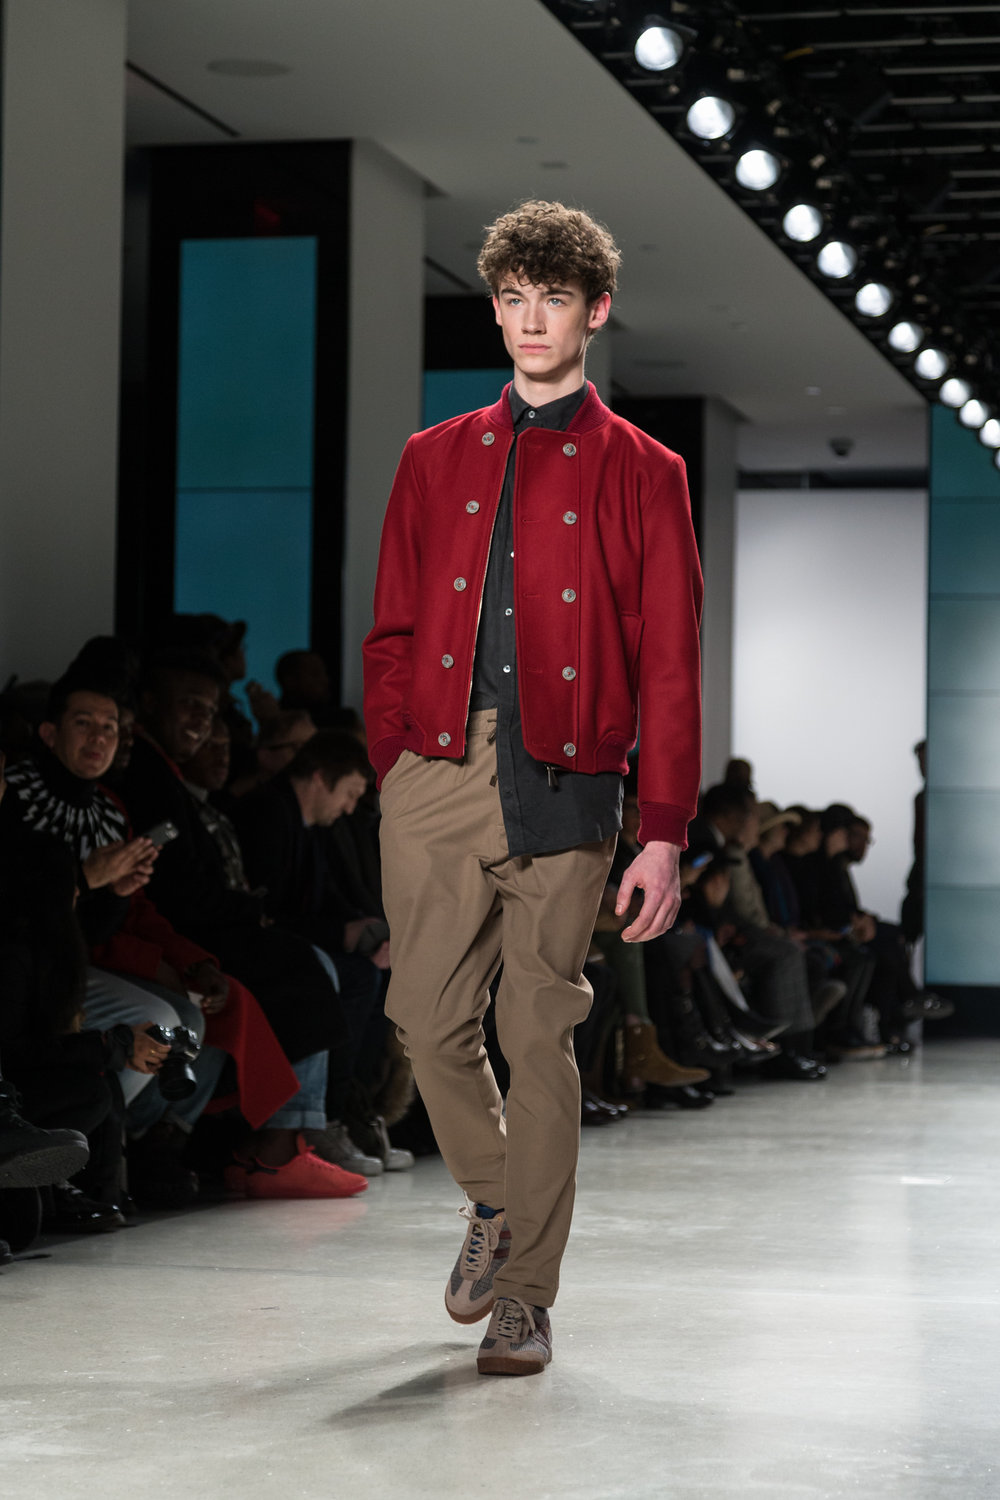 Brett Johnson_FW 2017 _Sherridon Poyer-3251.jpg